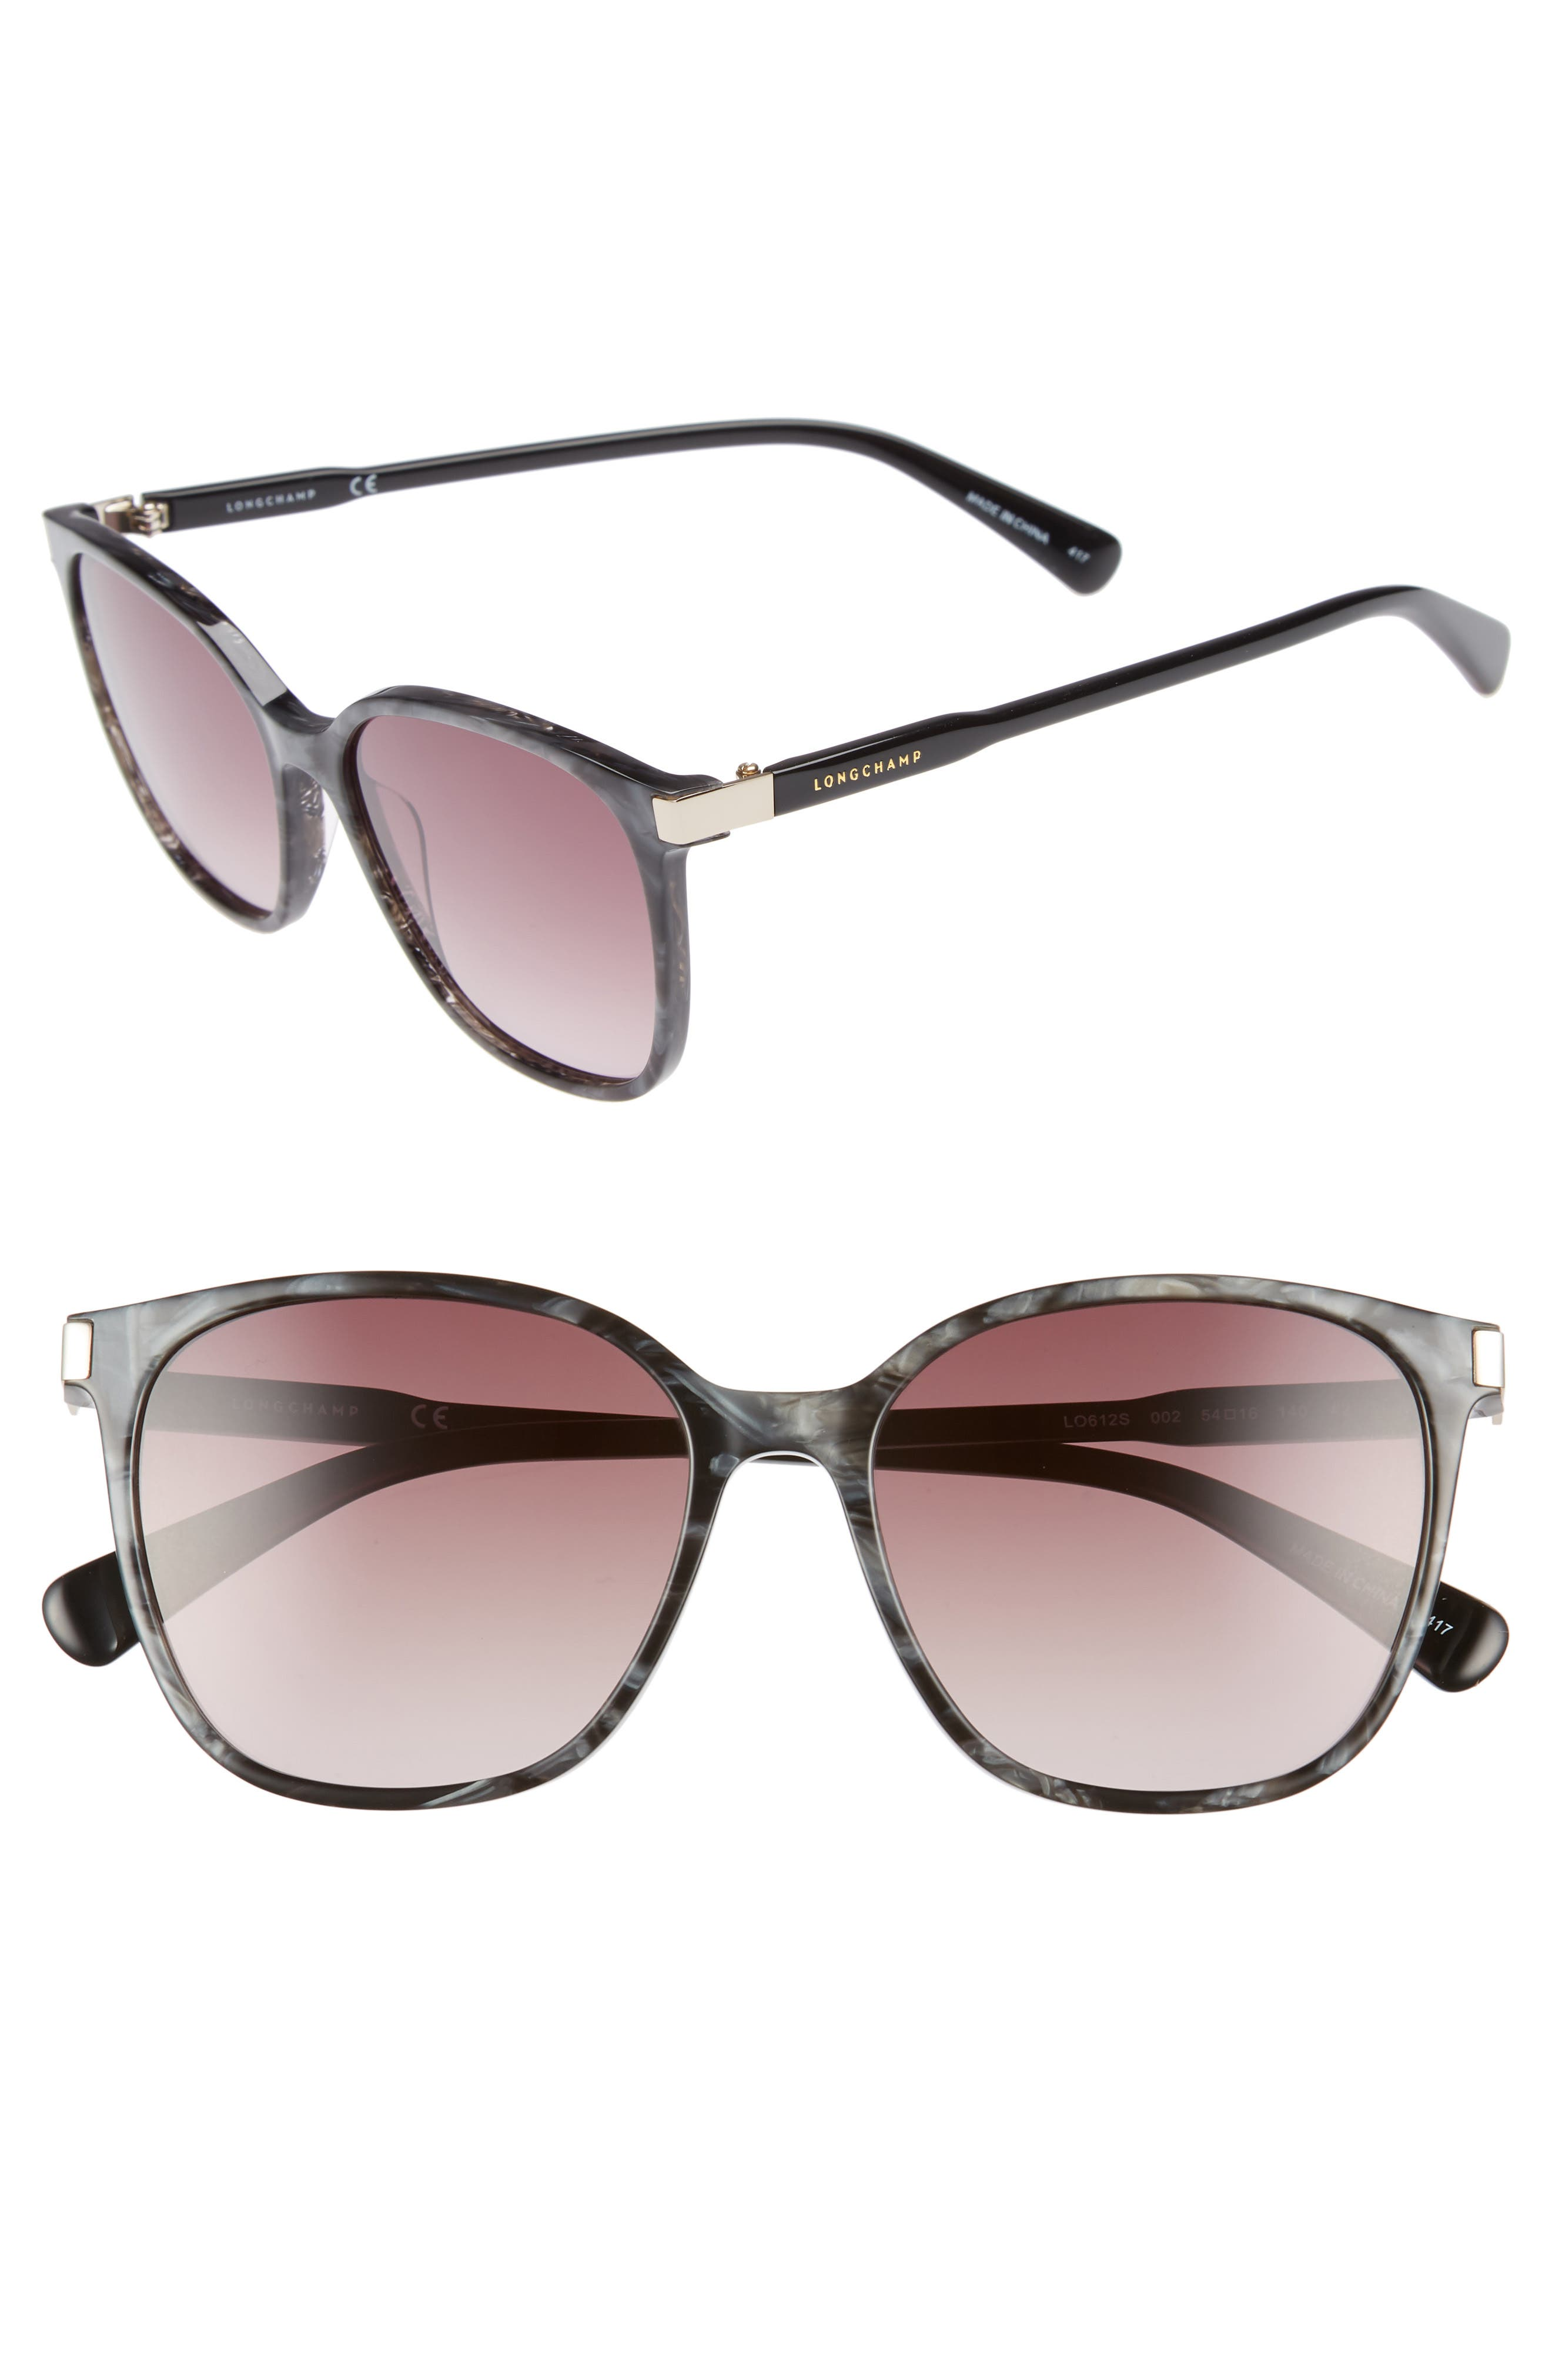 Longchamp 54mm Square Sunglasses